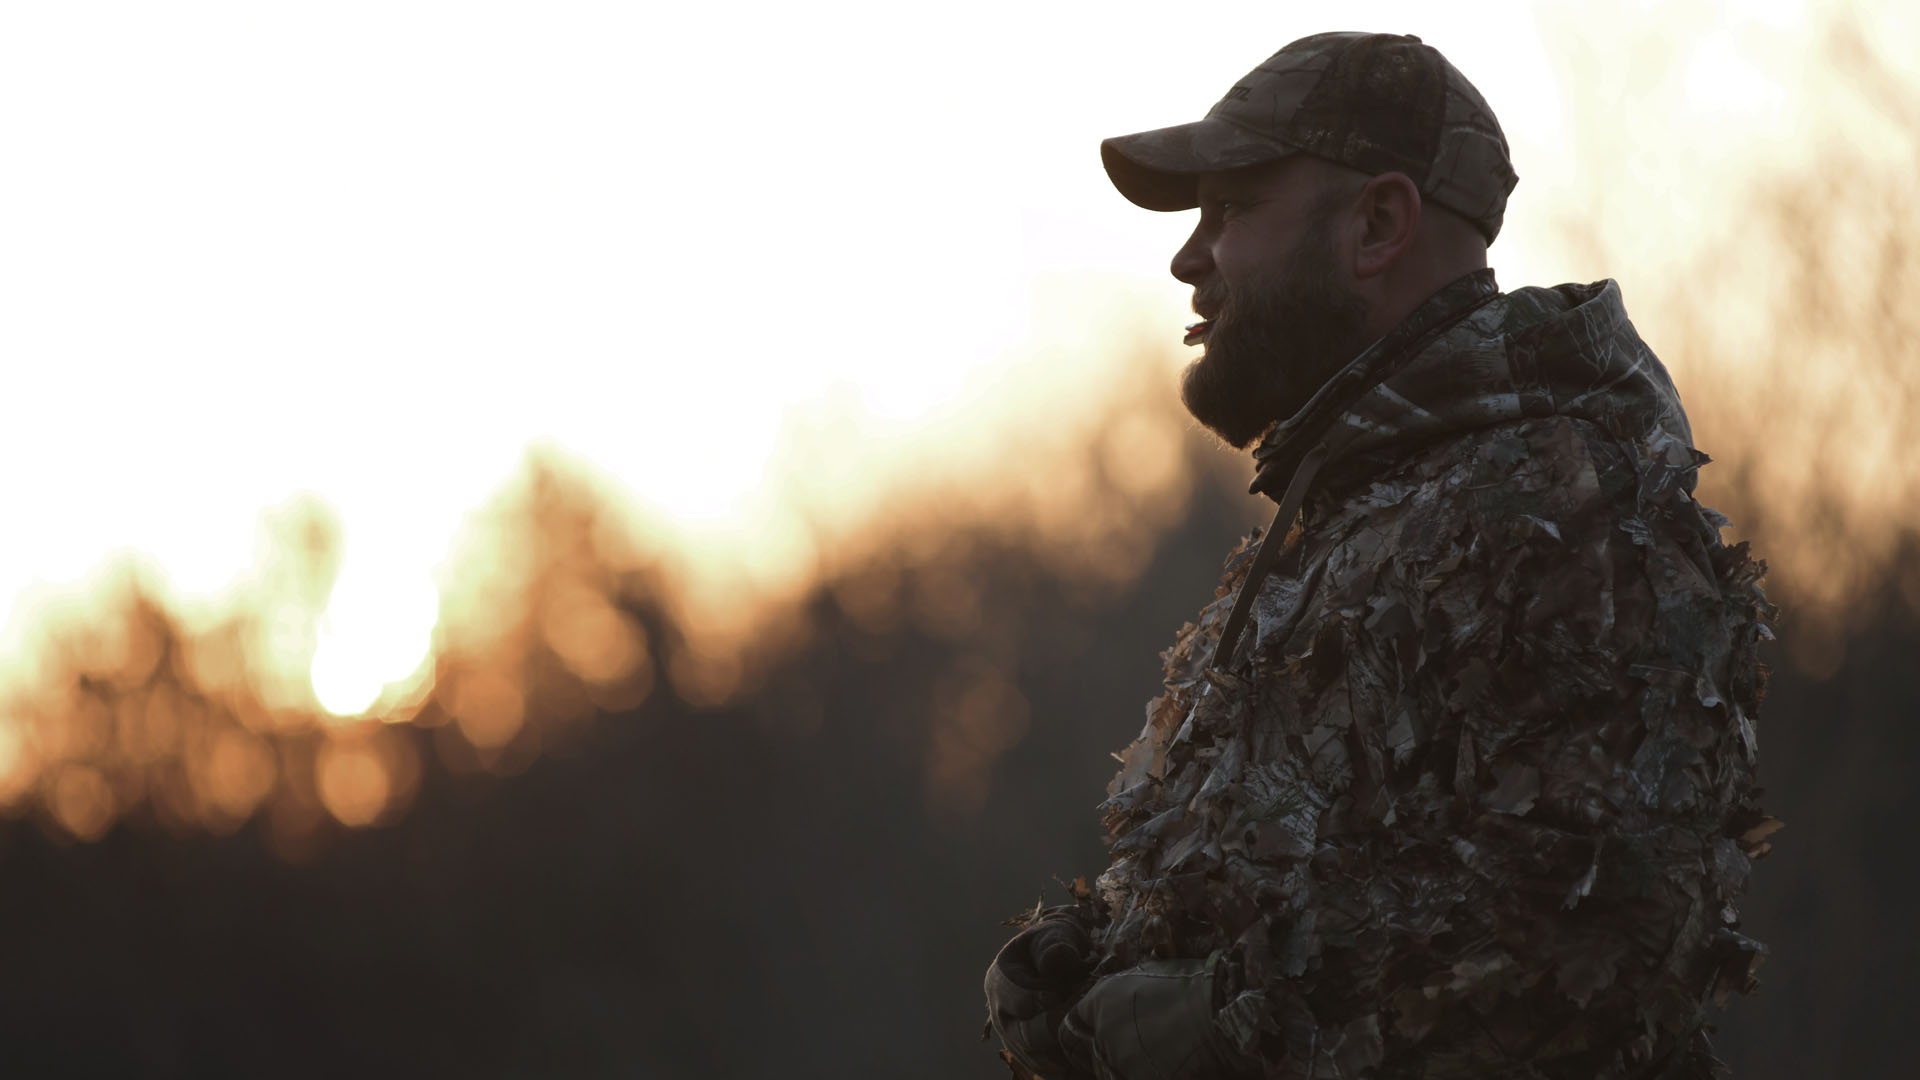 Paul Sawyer Feeds the Long Beard XR to Giant Gobblers